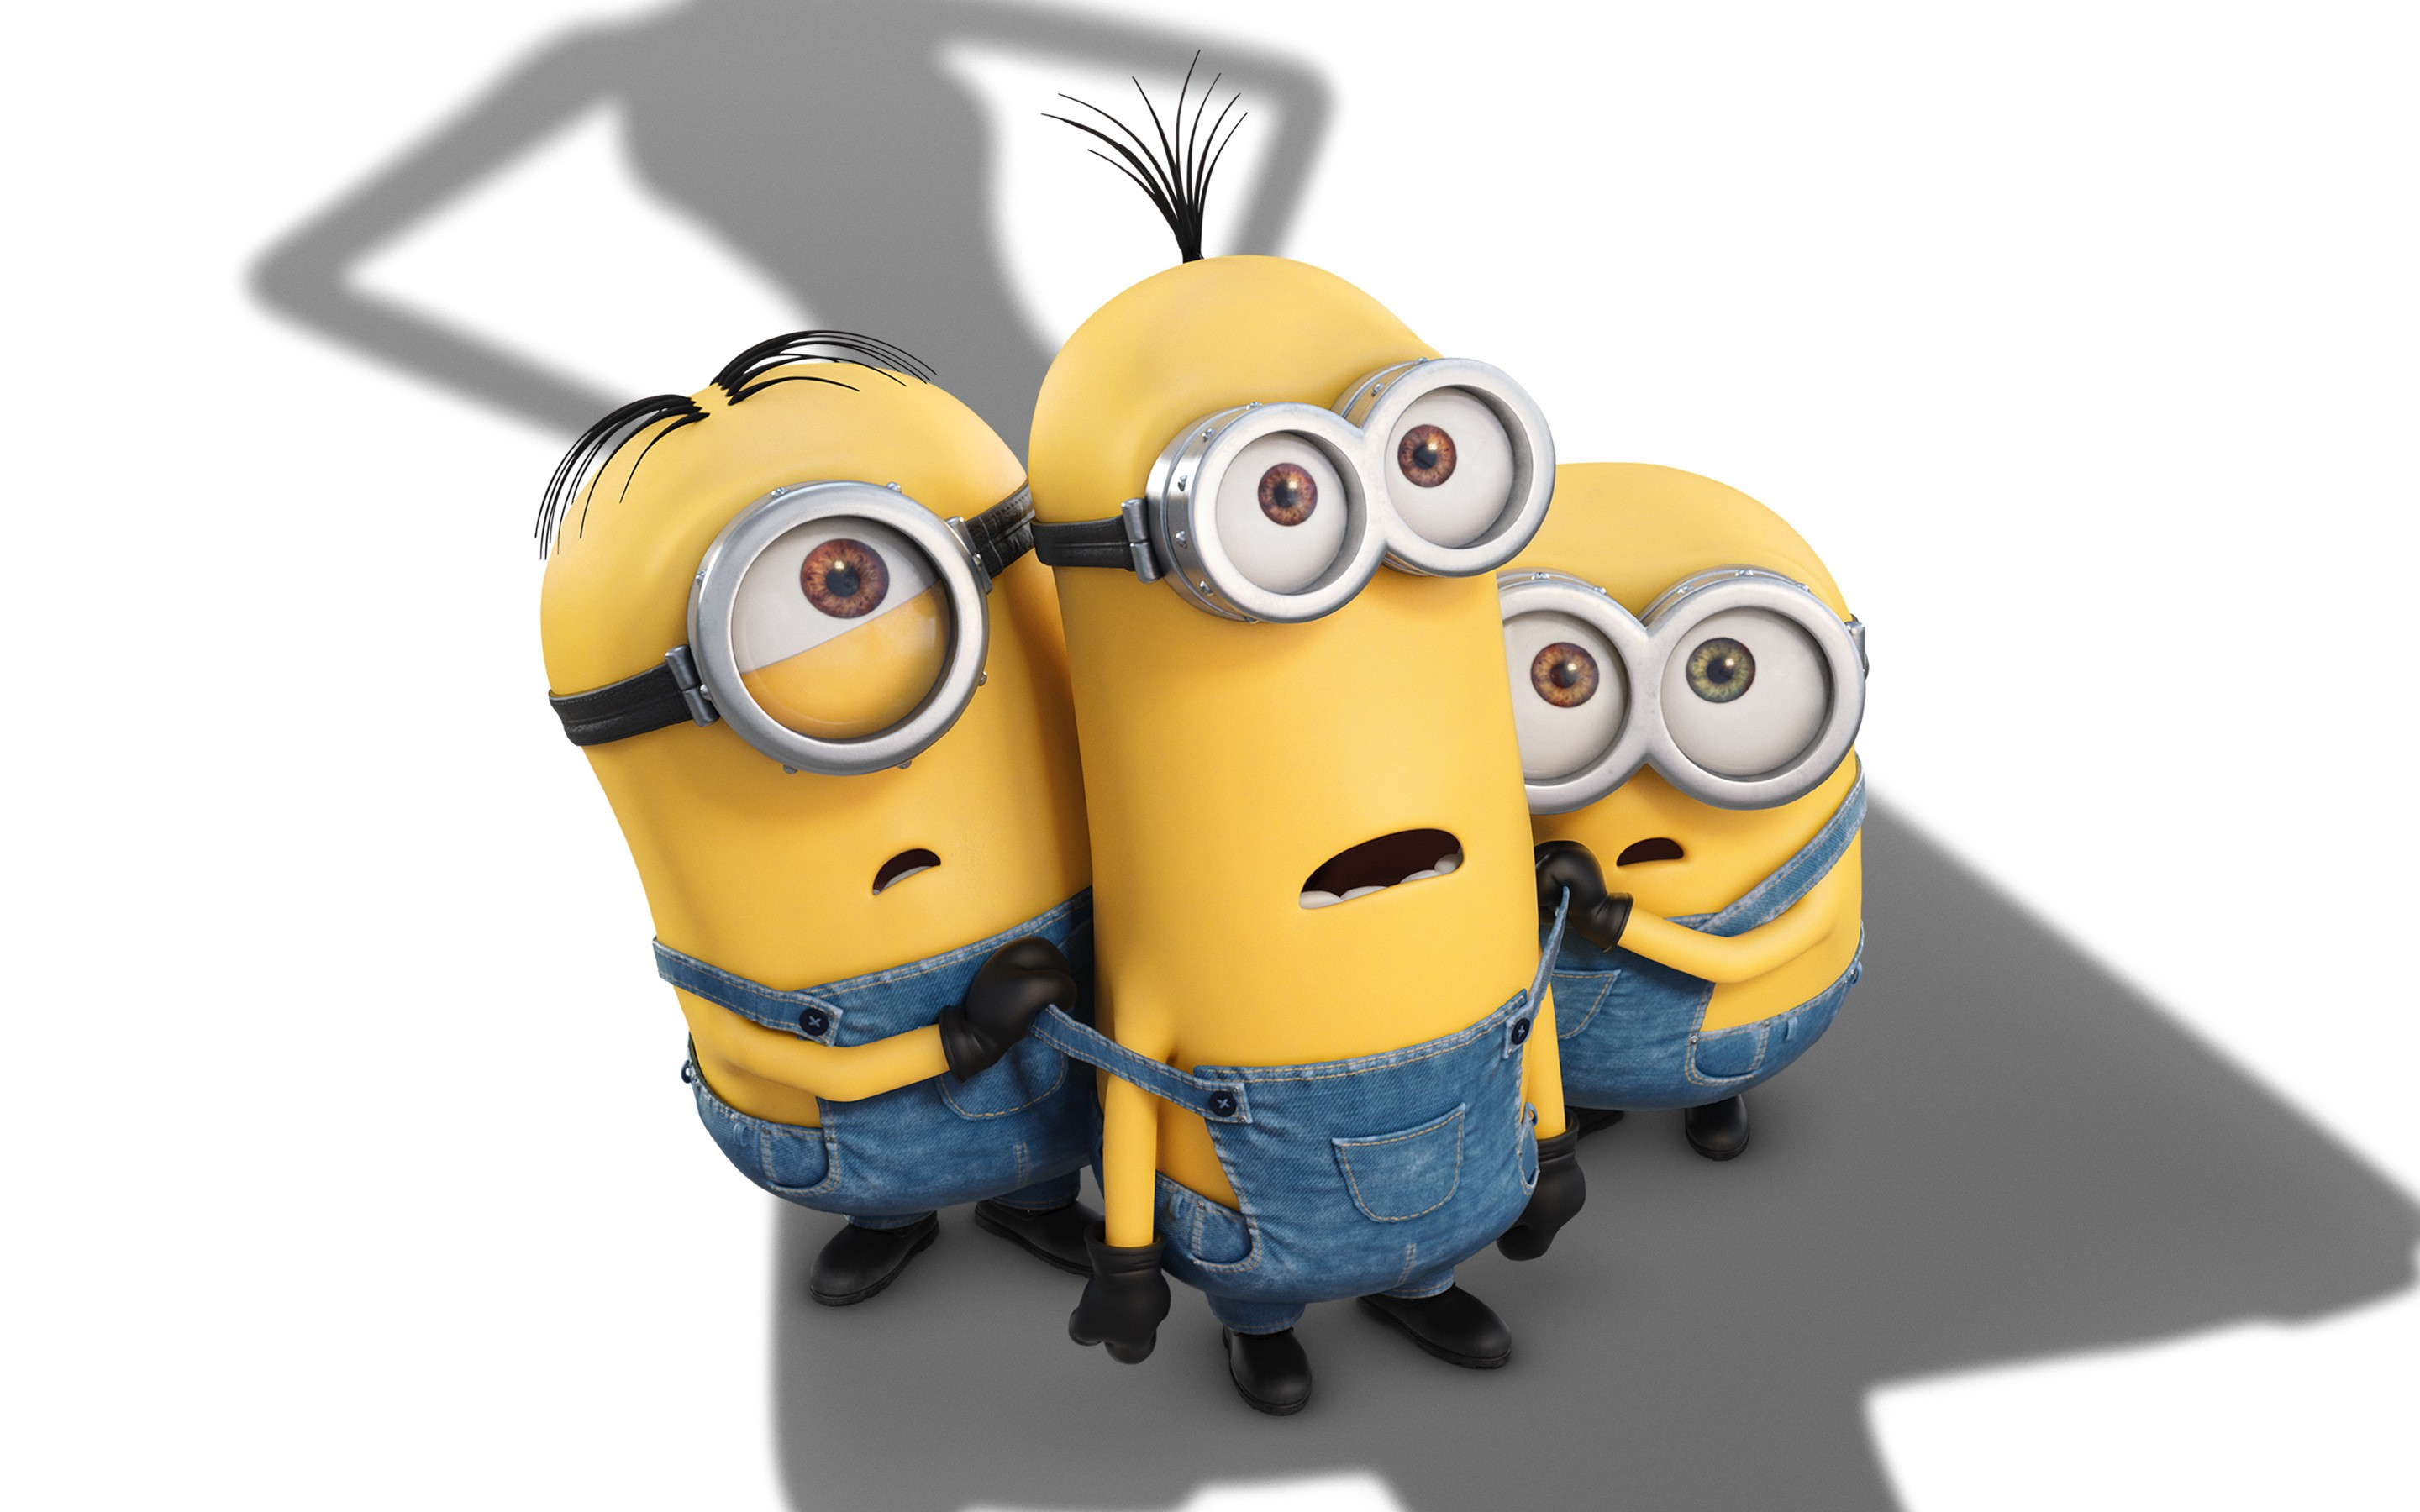 Minion wallpaper Cartoon wallpapers on We Heart